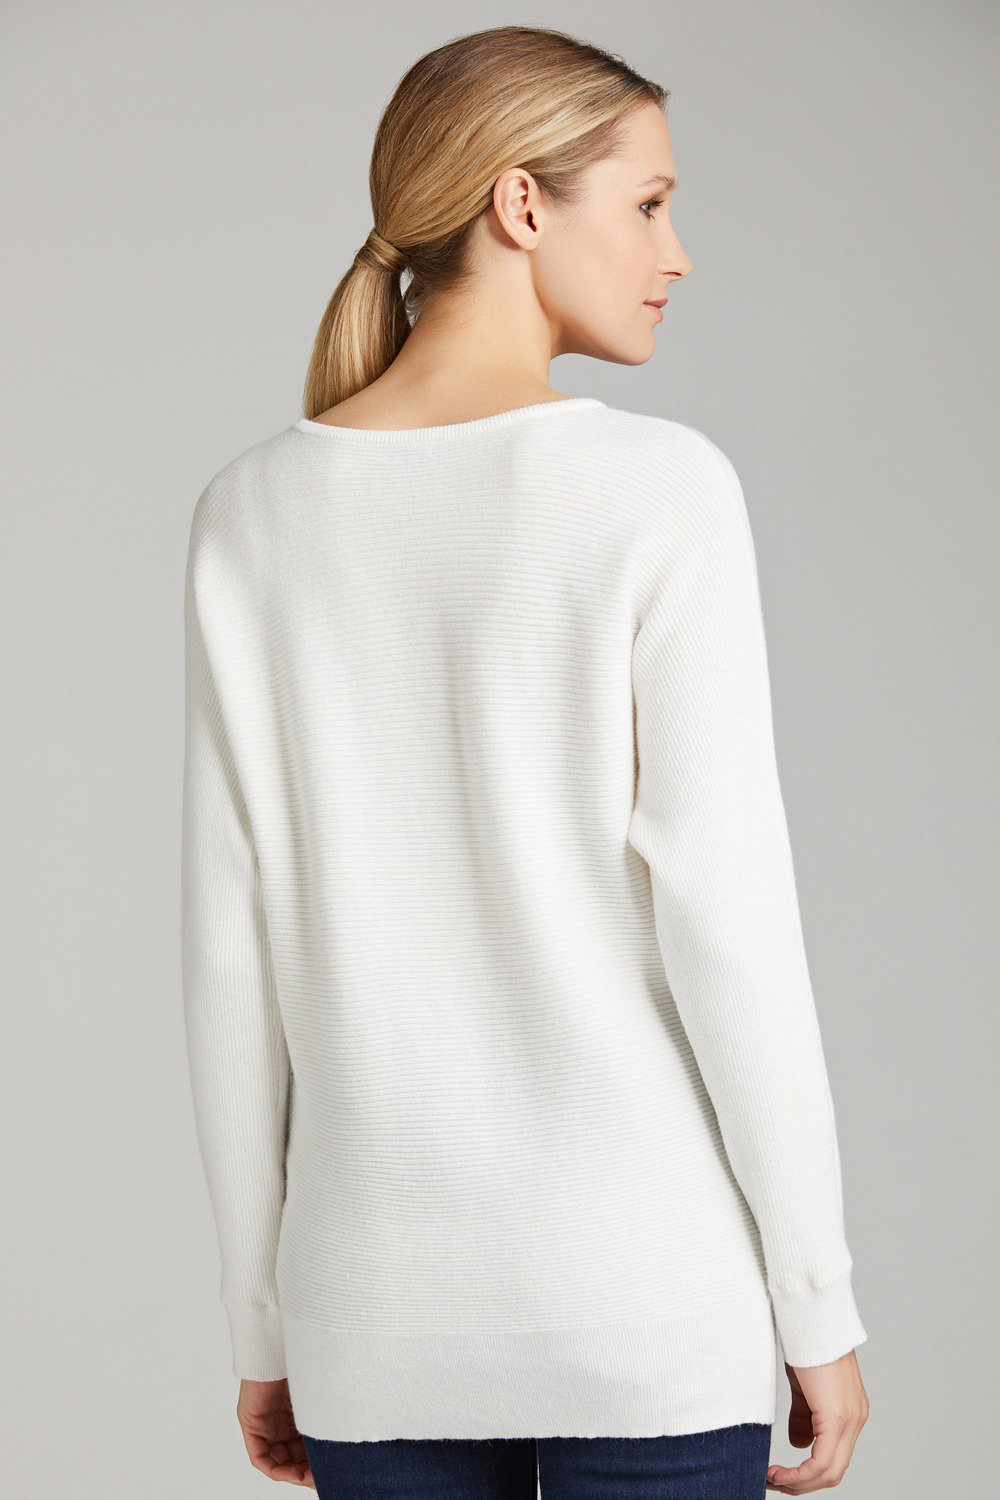 940e0f0bcf Emerge Ribbed Batwing Sweater Online